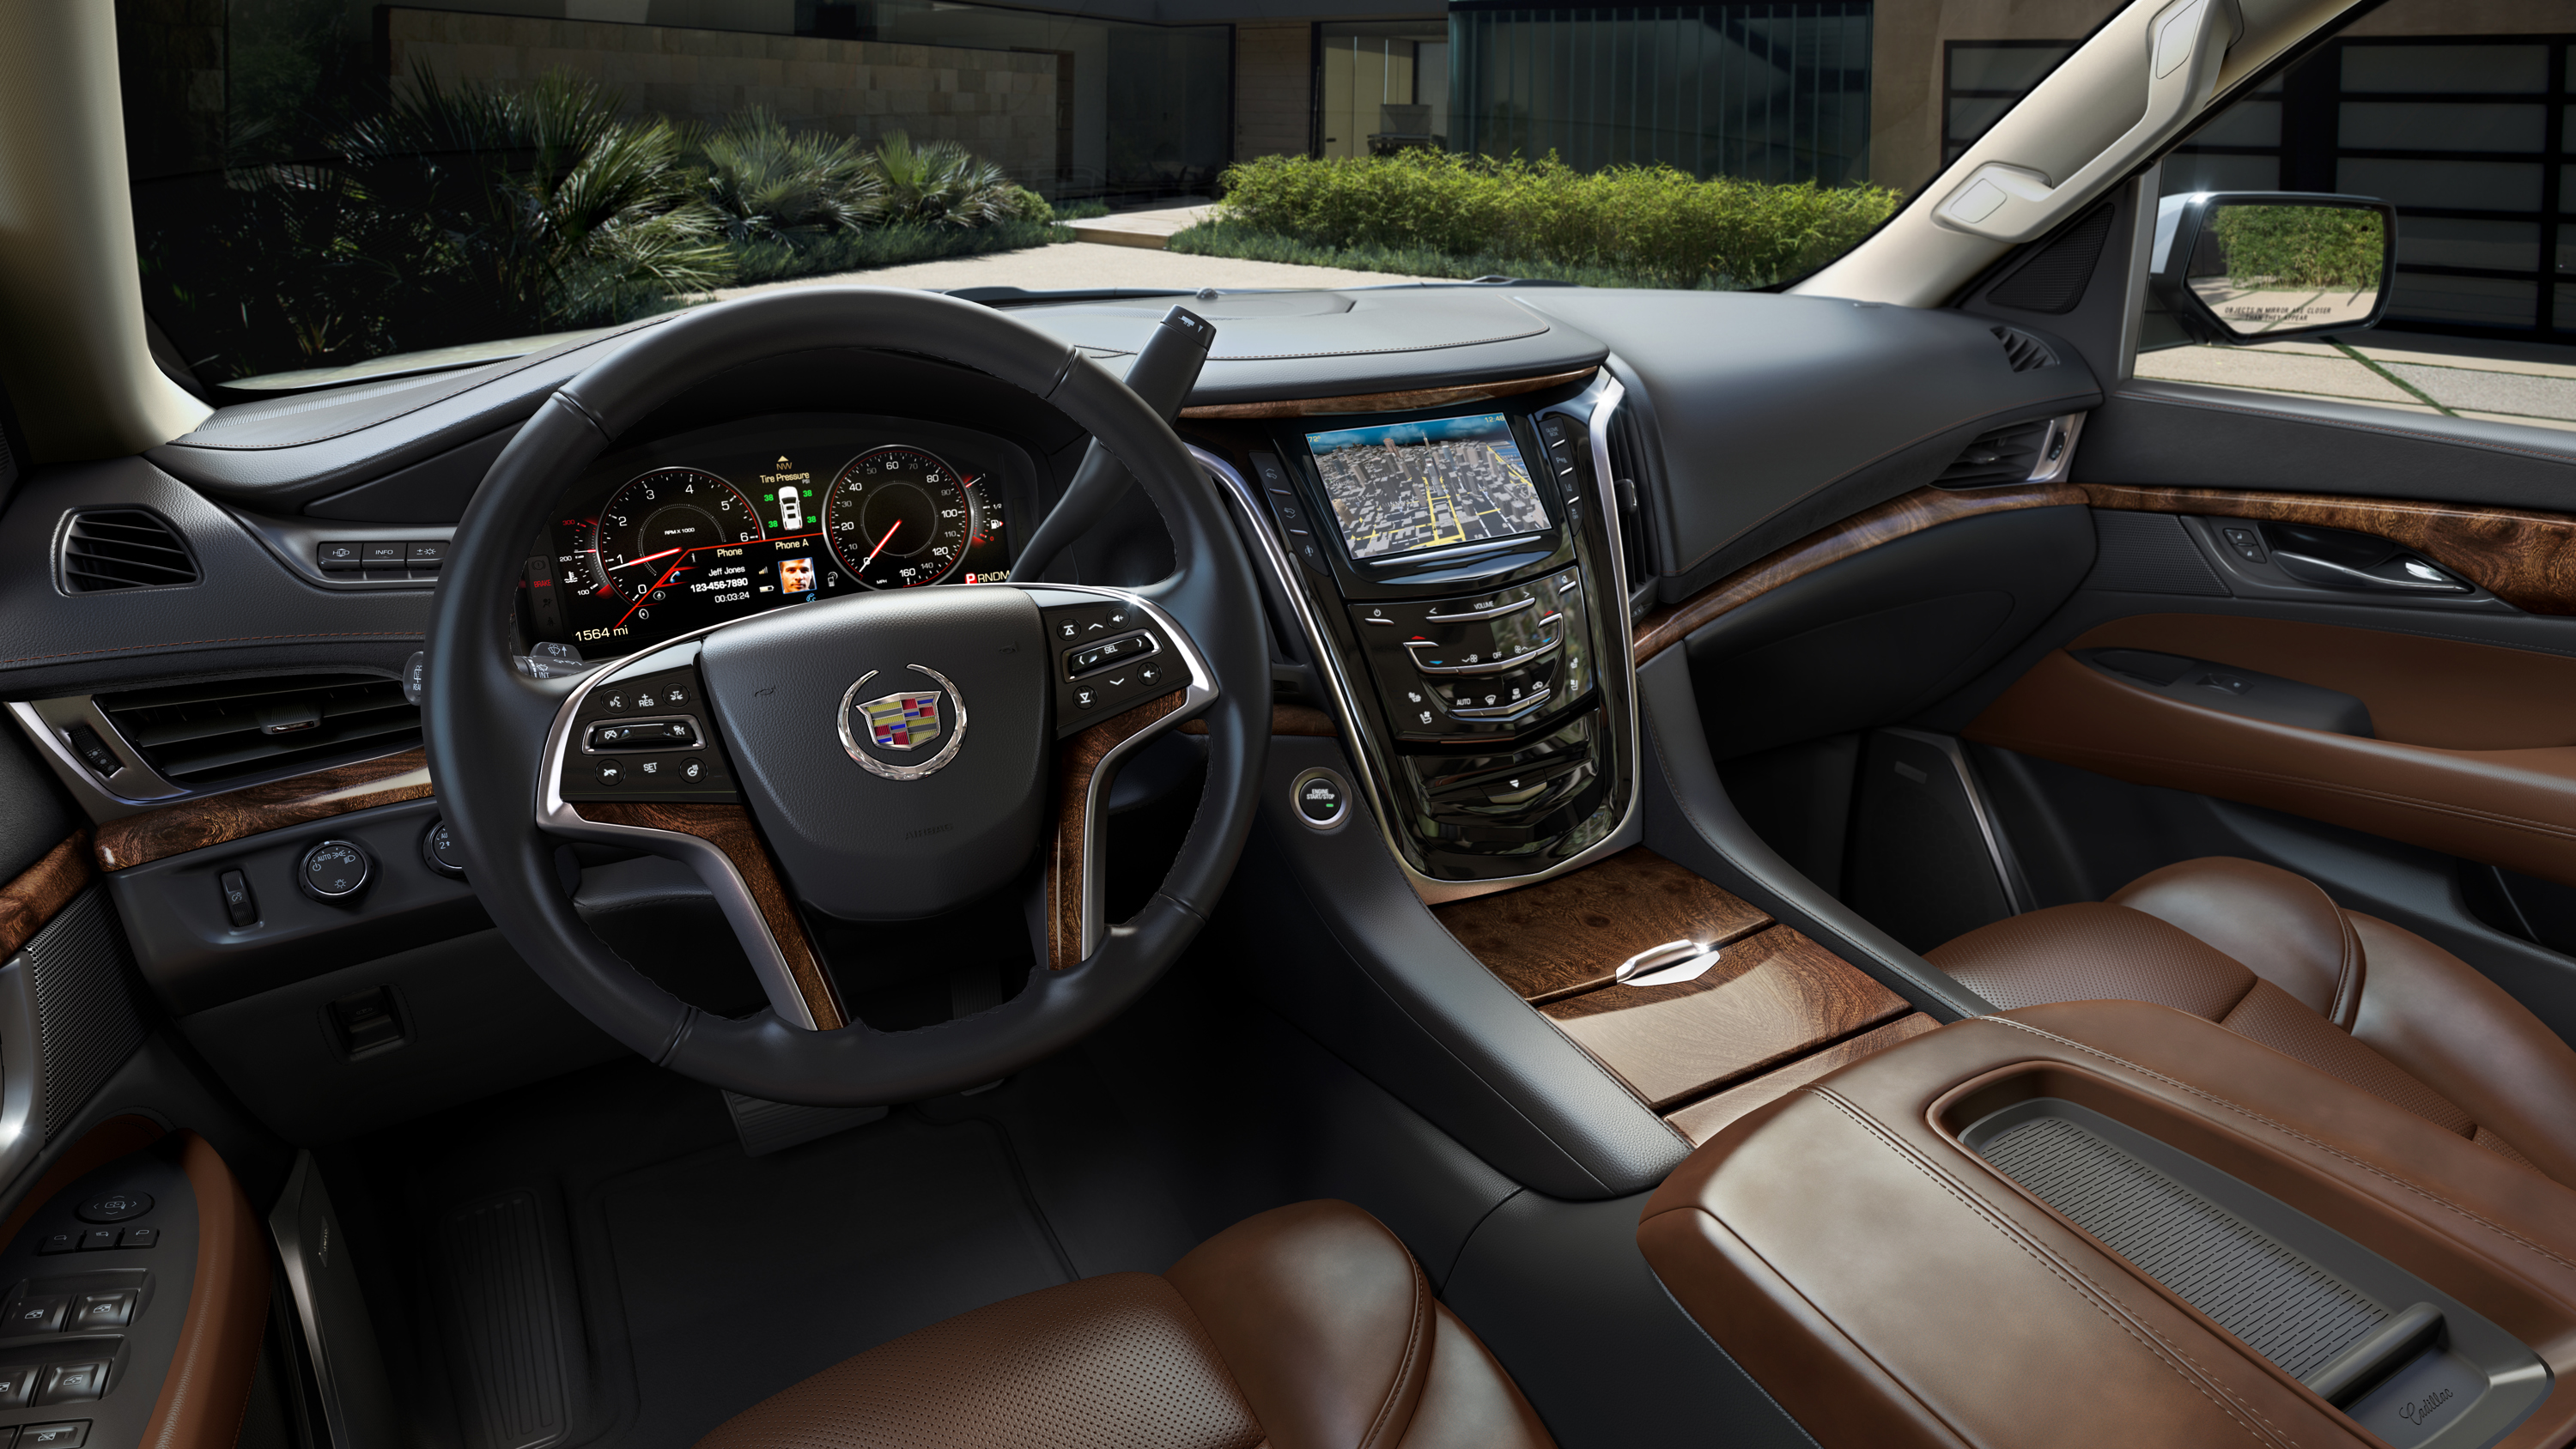 leisure haute escalade of cadillac review